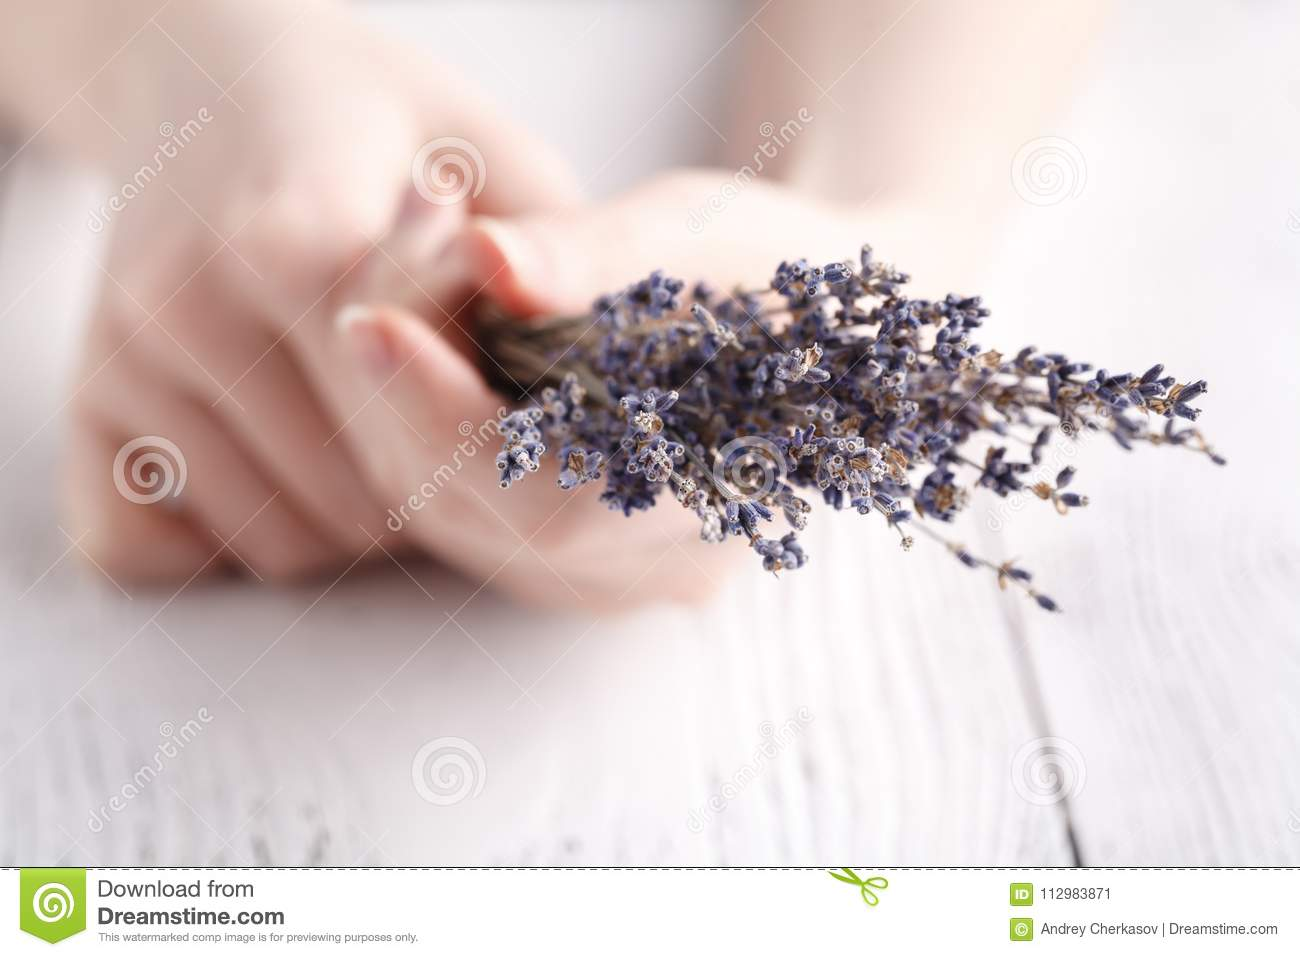 Dry lavender in female hands